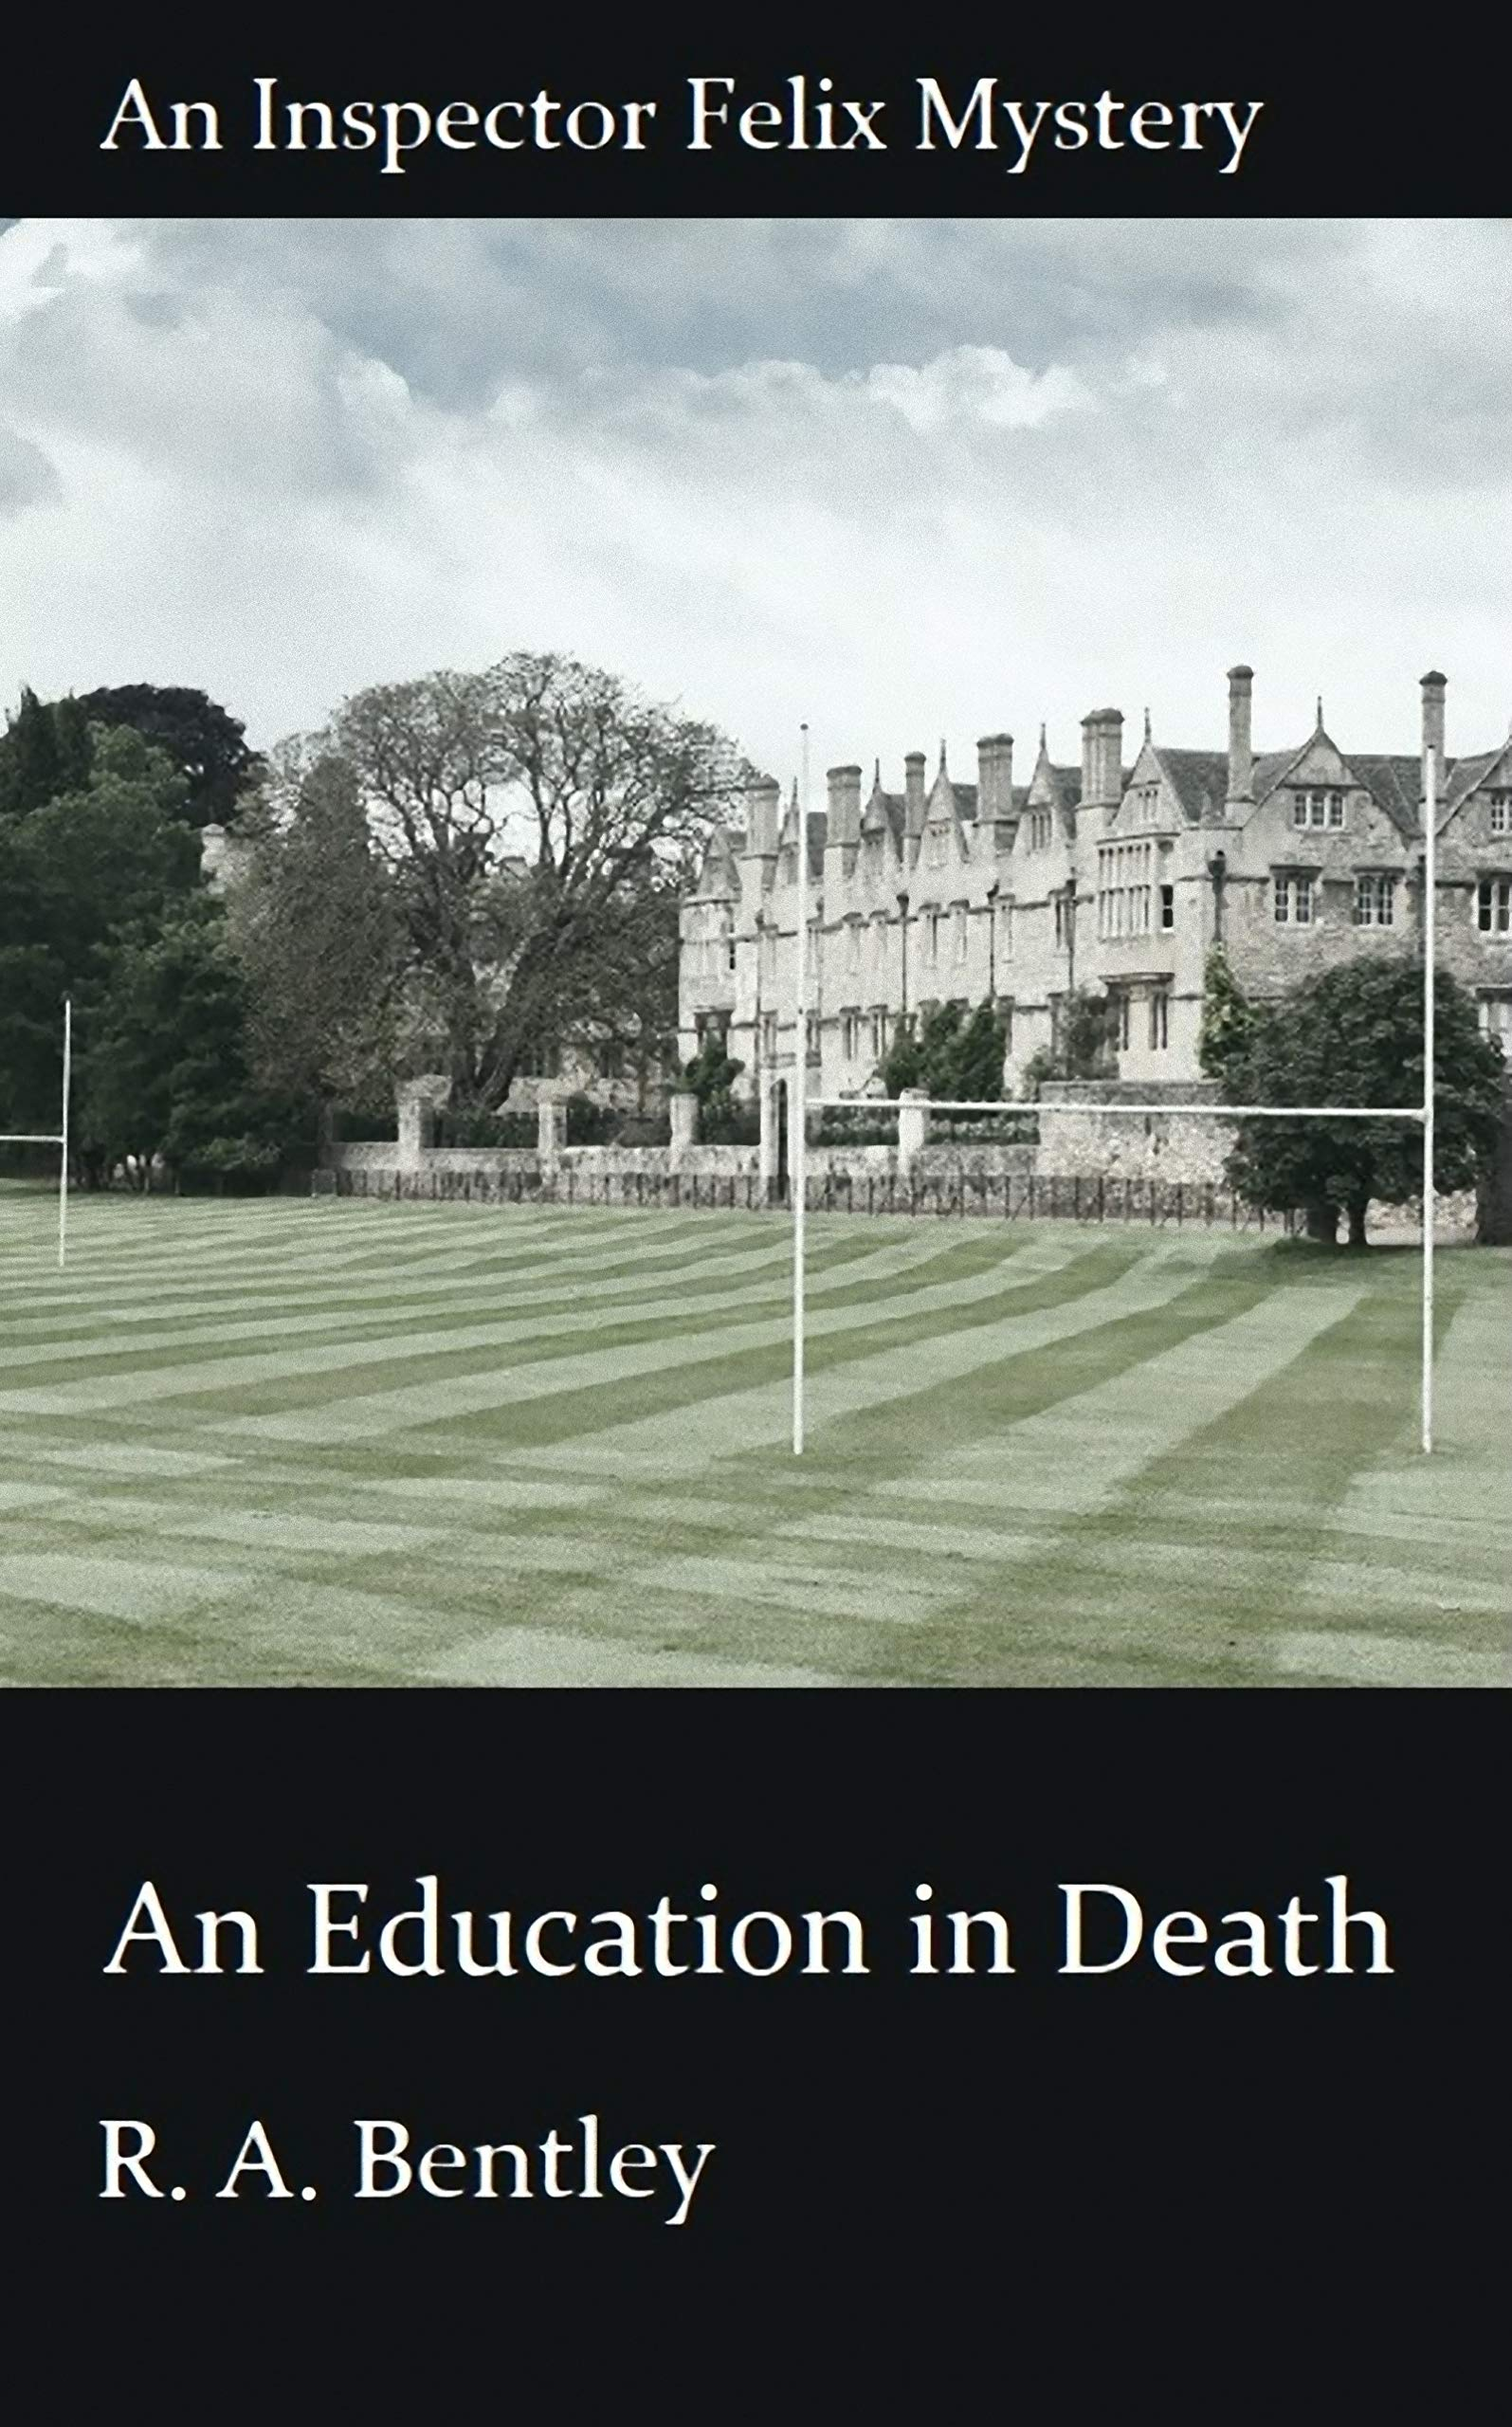 An Education in Death (The Inspector Felix Mysteries Book 9)